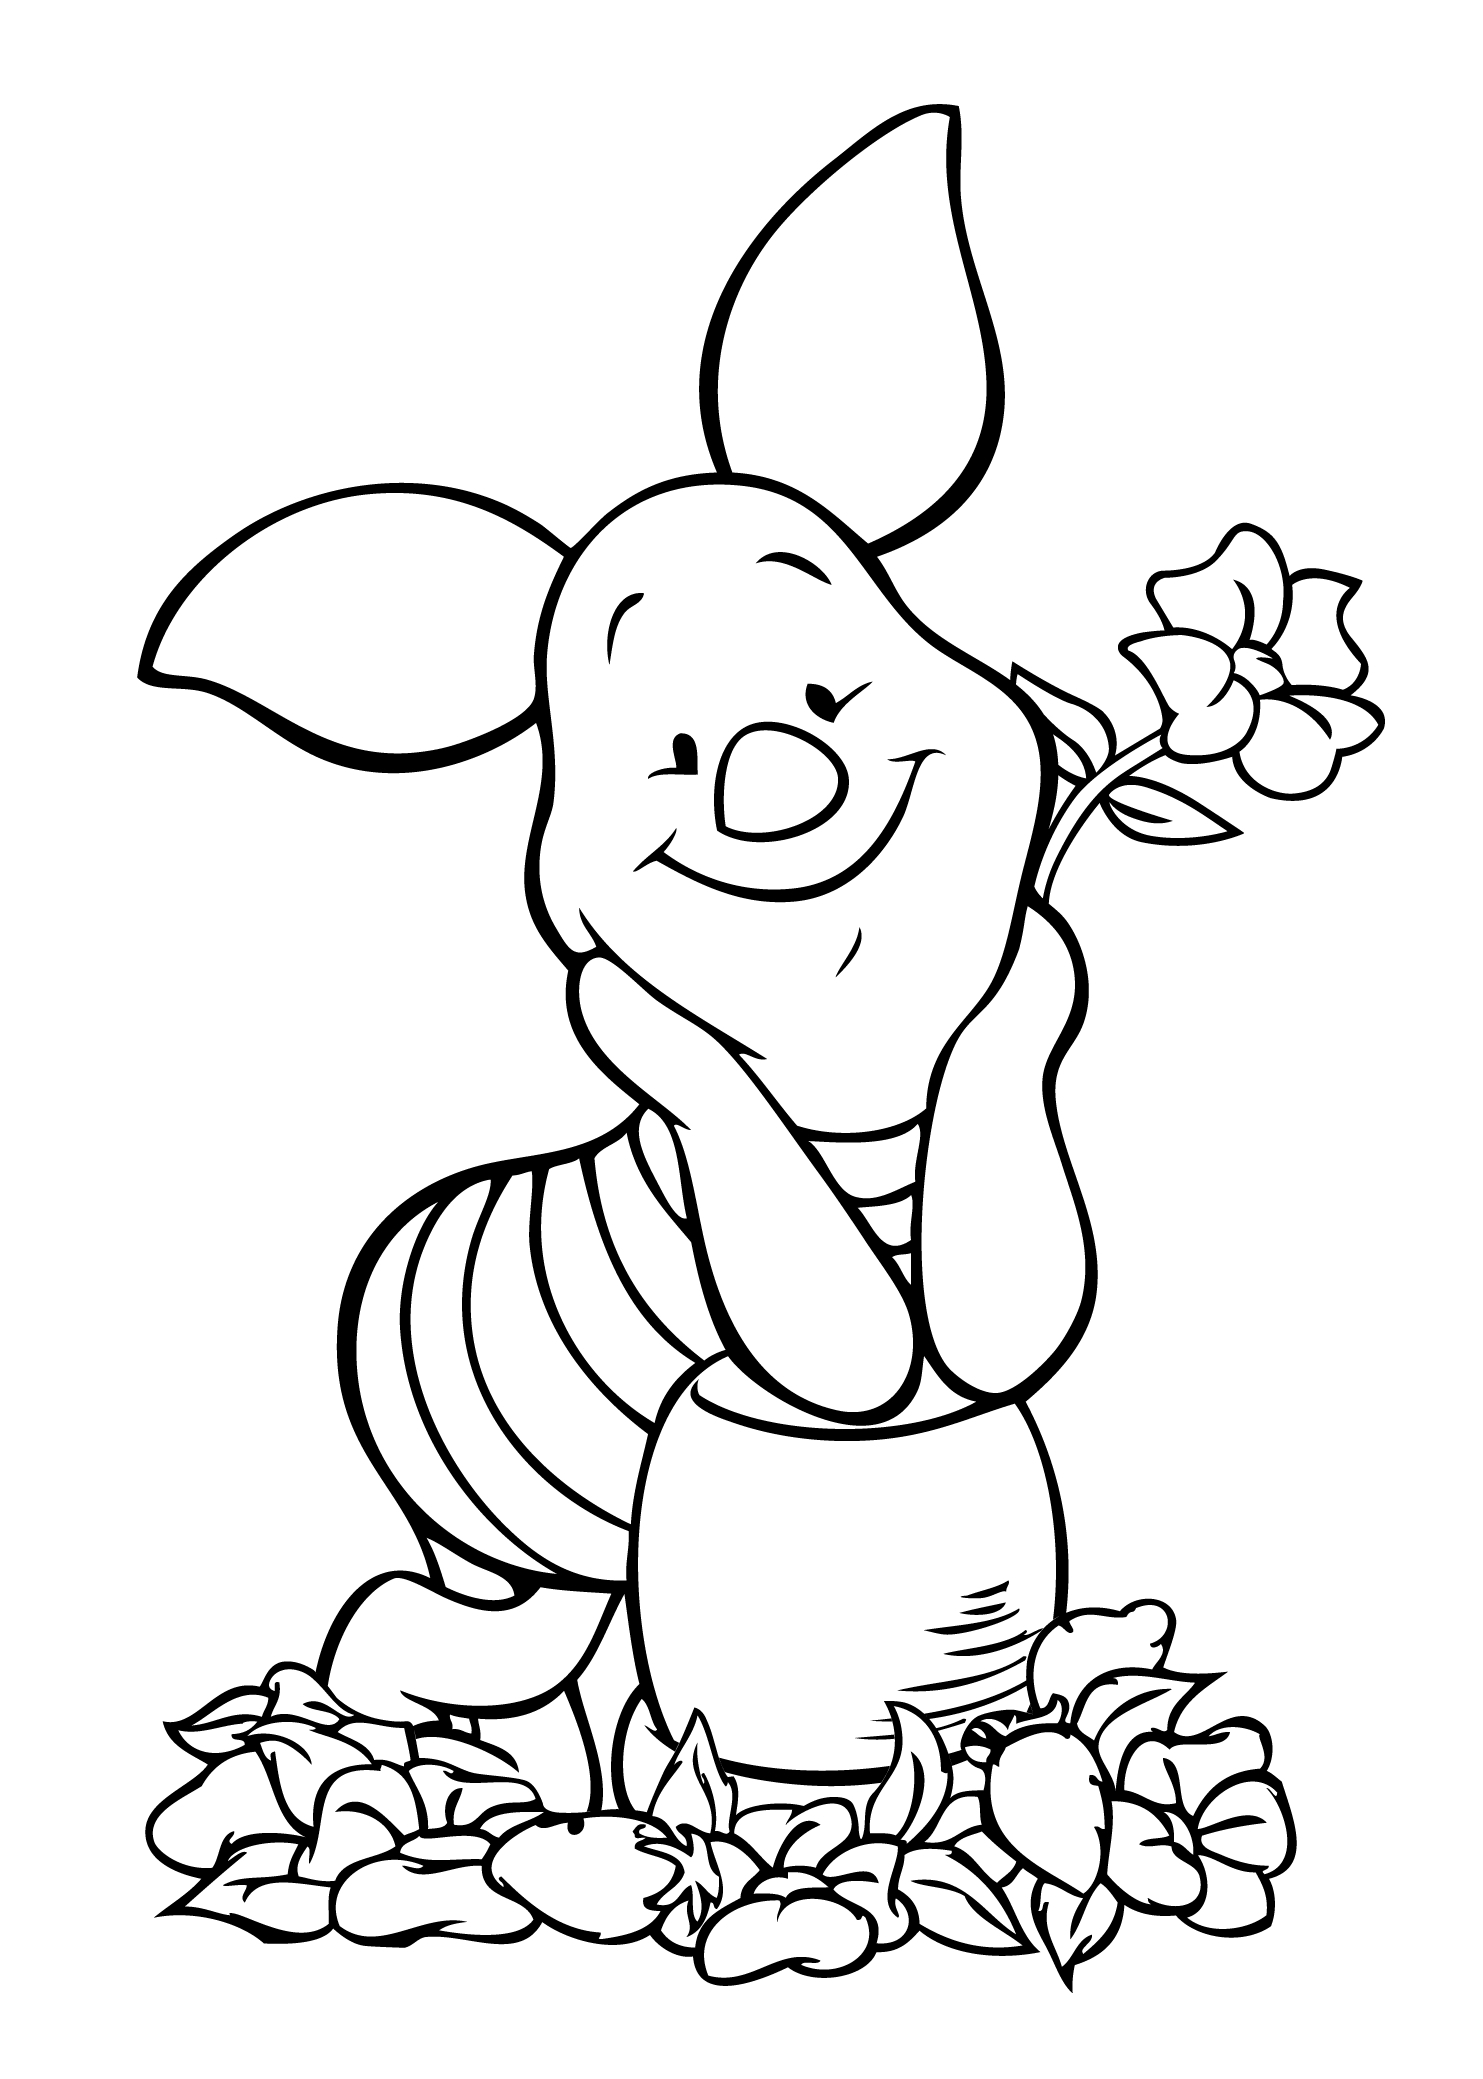 The Best Free Pooh Drawing Images Download From 992 Free